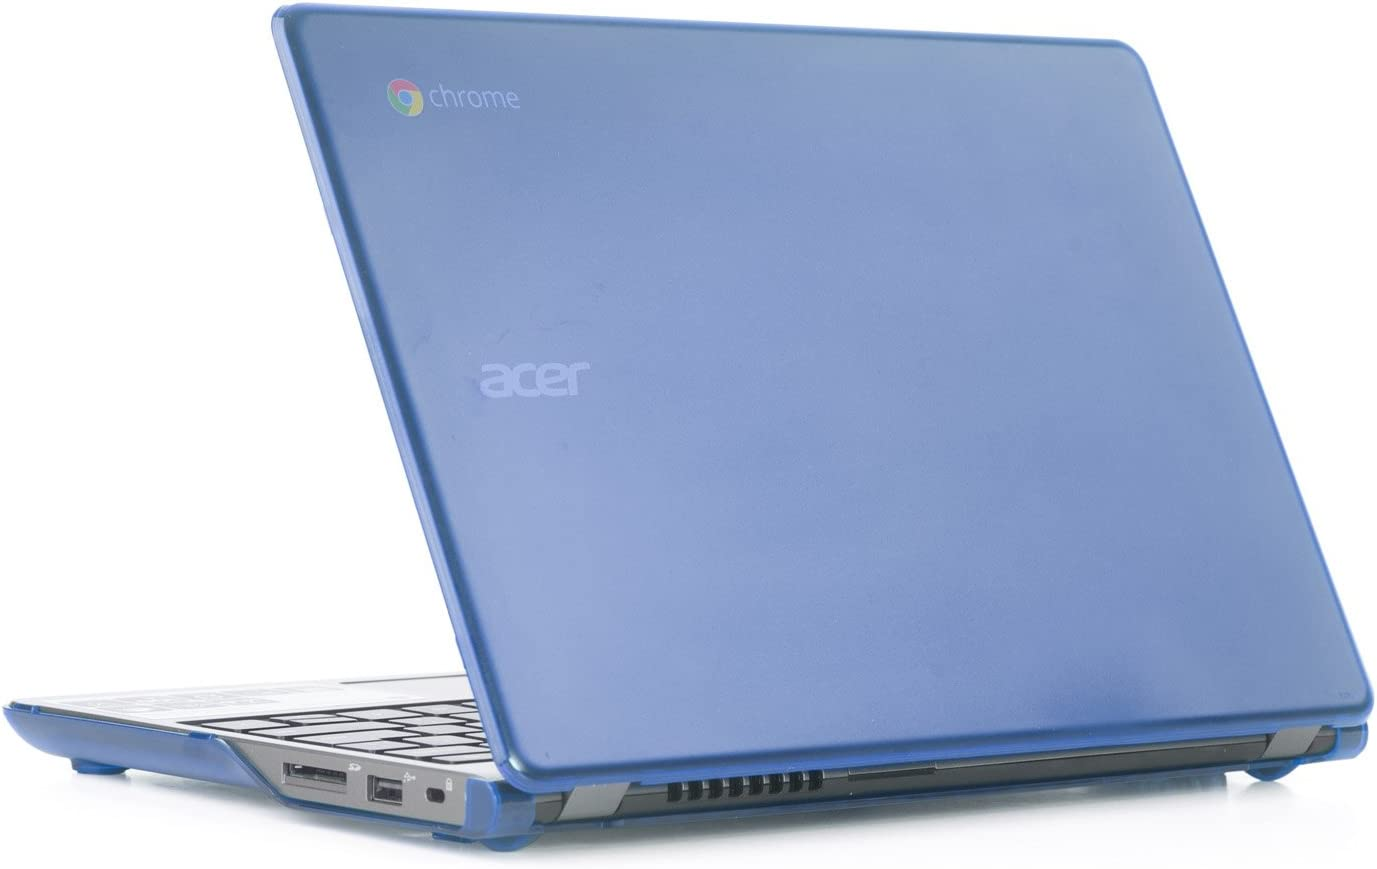 "Blue iPearl mCover Hard Shell Case for 11.6"" Acer C720 C720P C740 Series ChromeBook Laptop (NOT Compatible with Newer 11.6"" Acer Chromebook 11 C730 / CB3-111 / CB3-131 Series Laptop)"